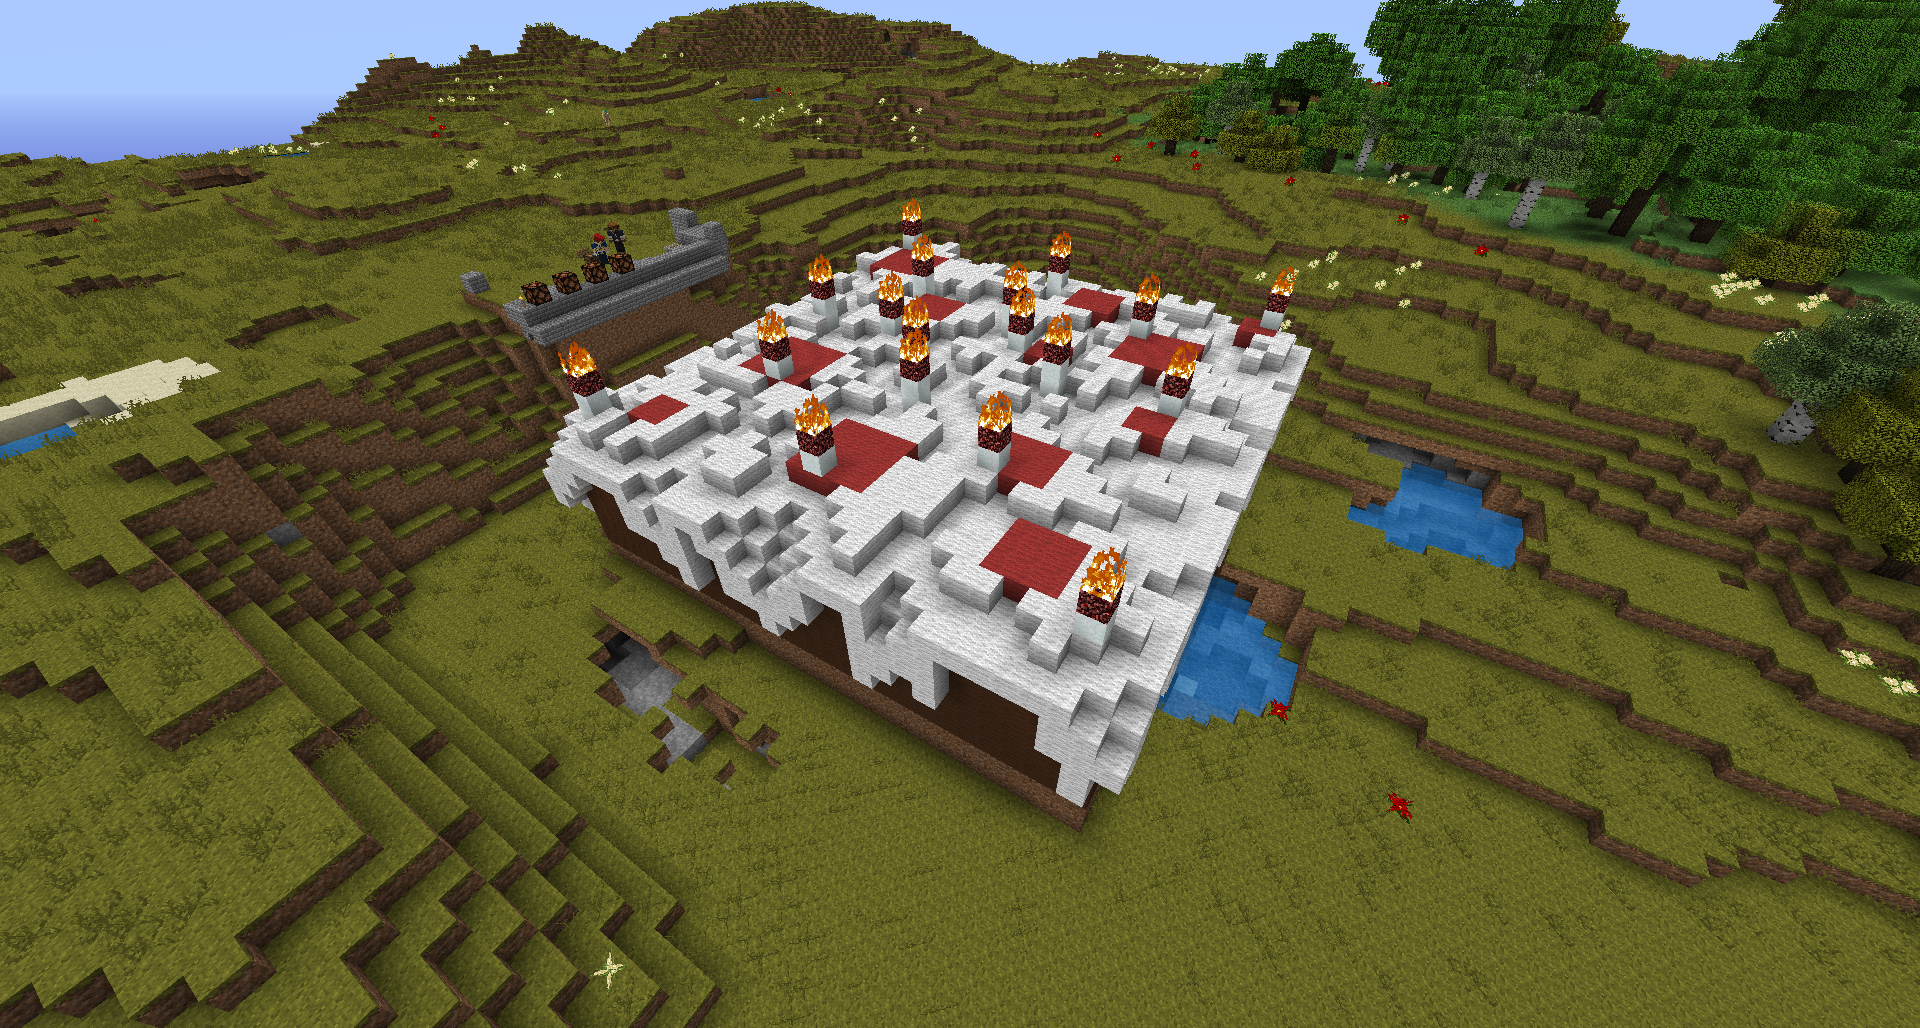 Minecraft Cake With Candles Game Image